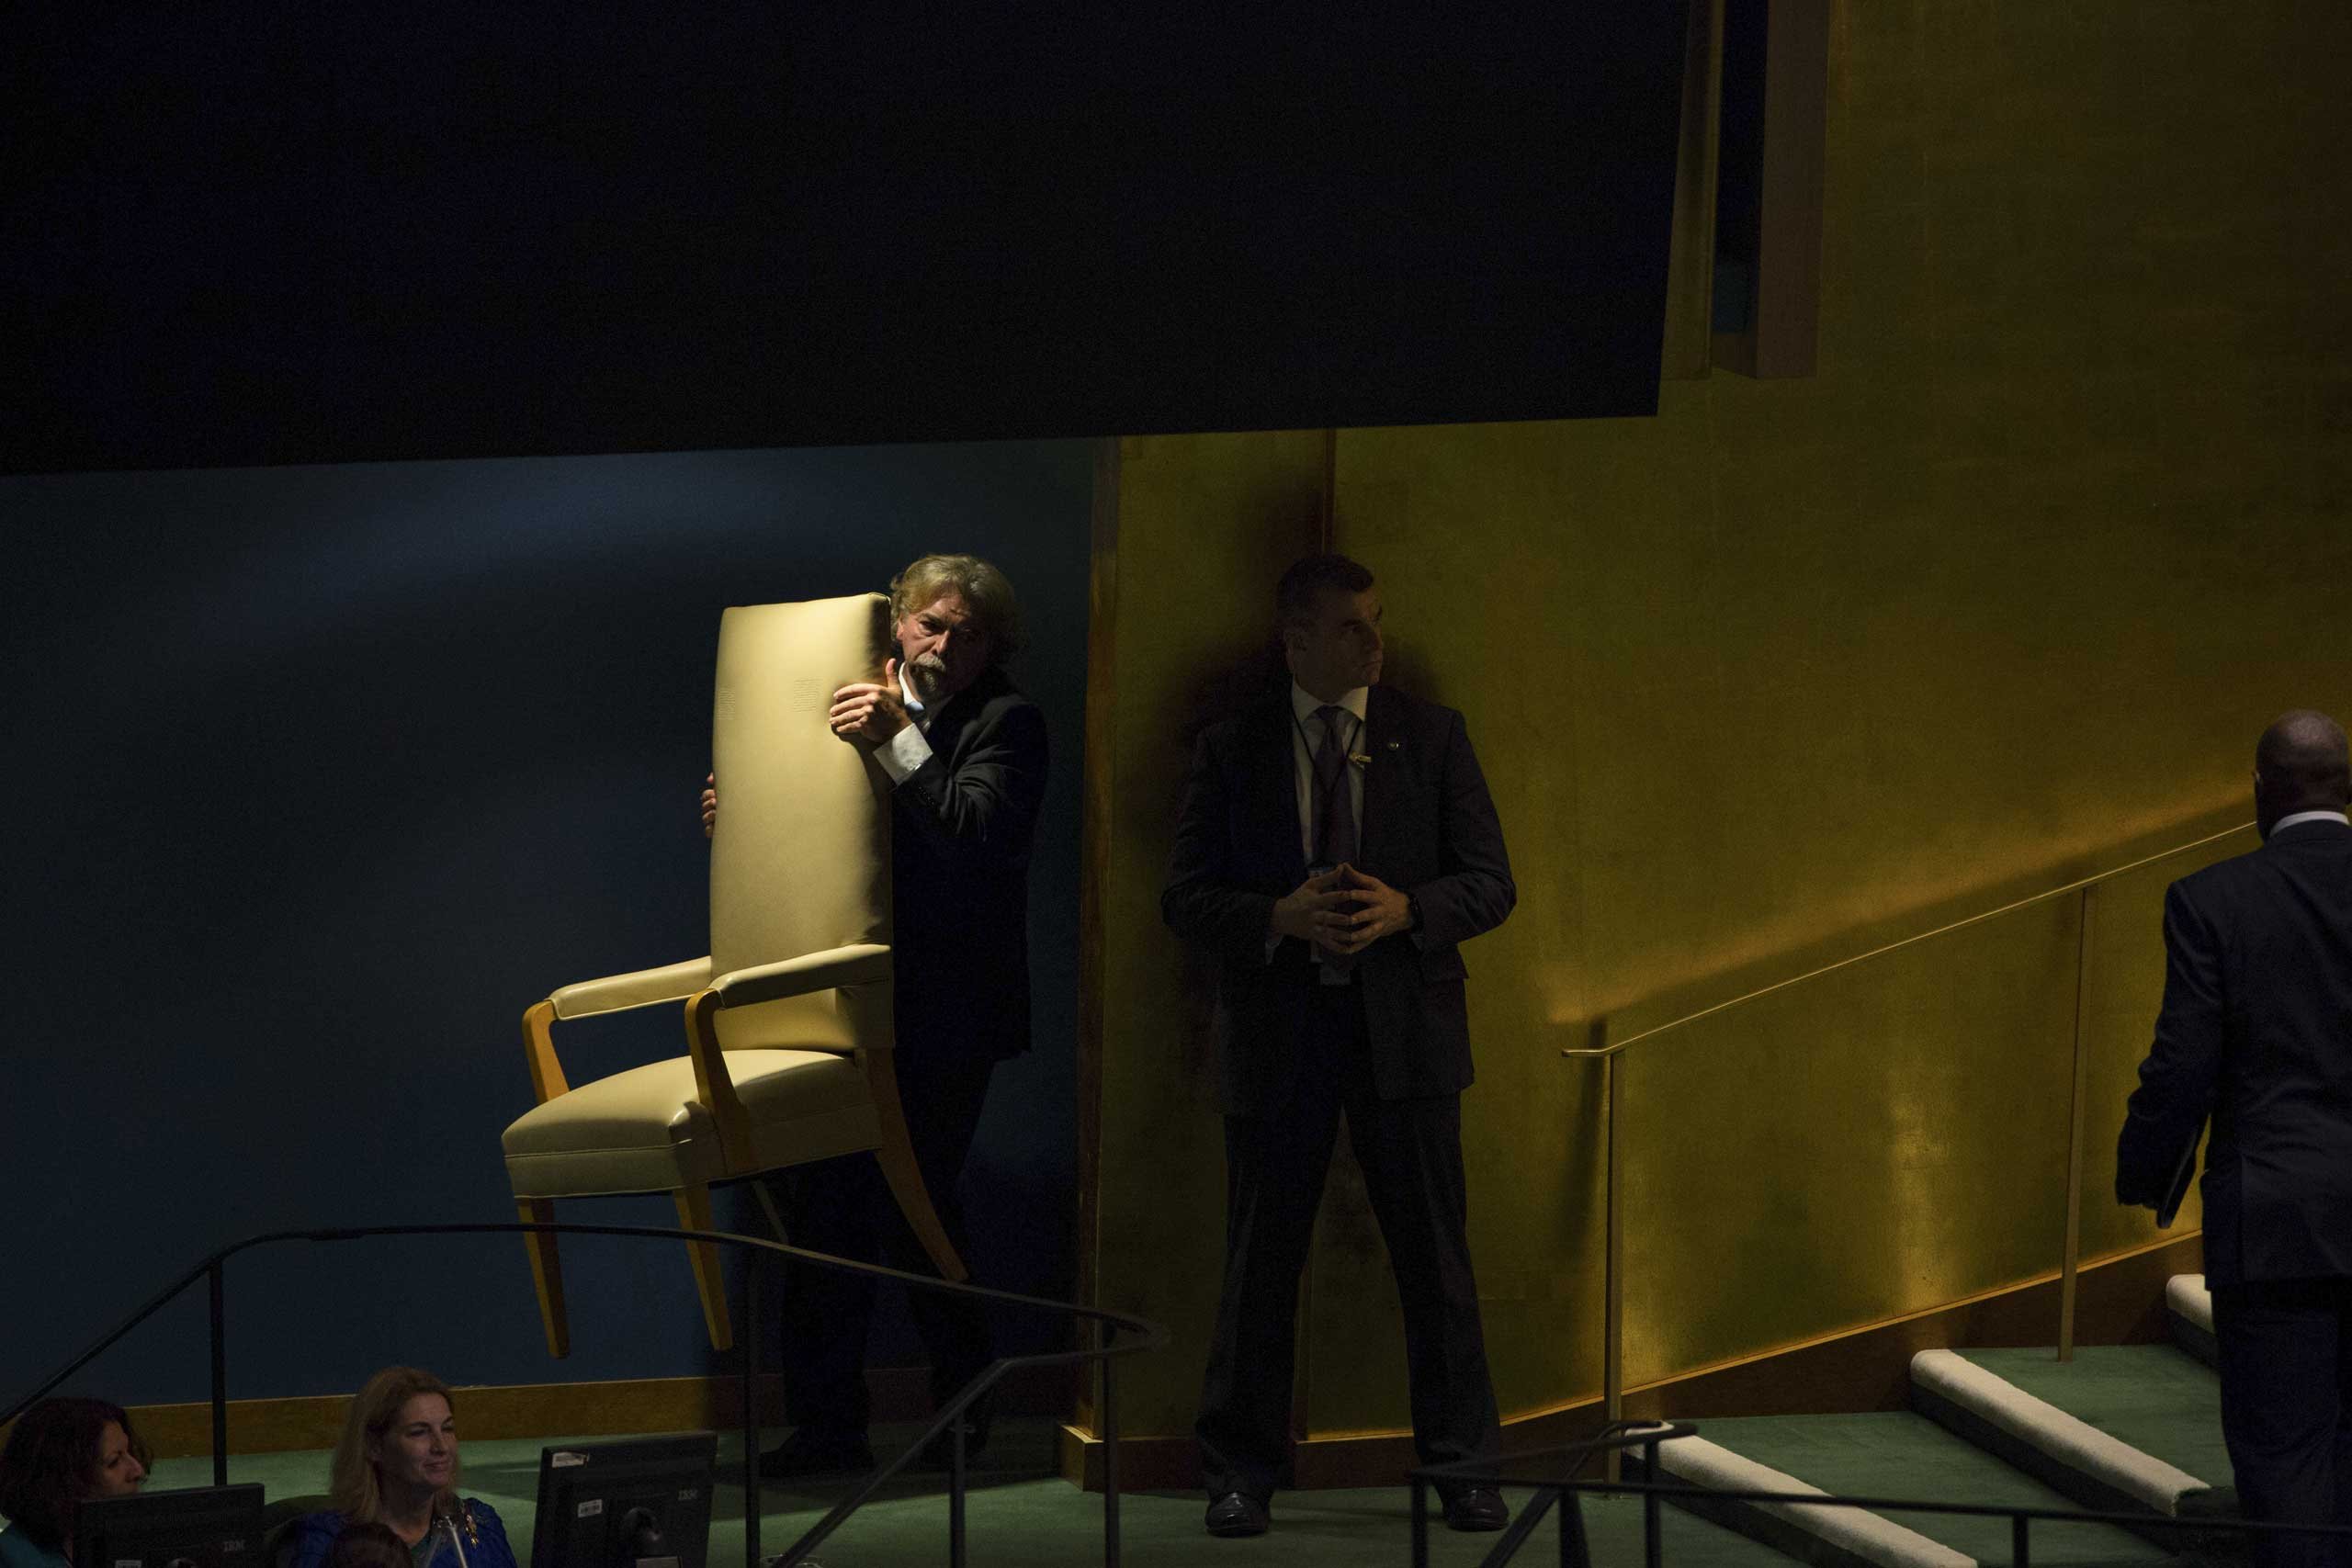 Sept. 24, 2014. The chair that will be sat upon by scores of world leaders was brought to the stage before the start of the General Assembly at the United Nations' headquarters.